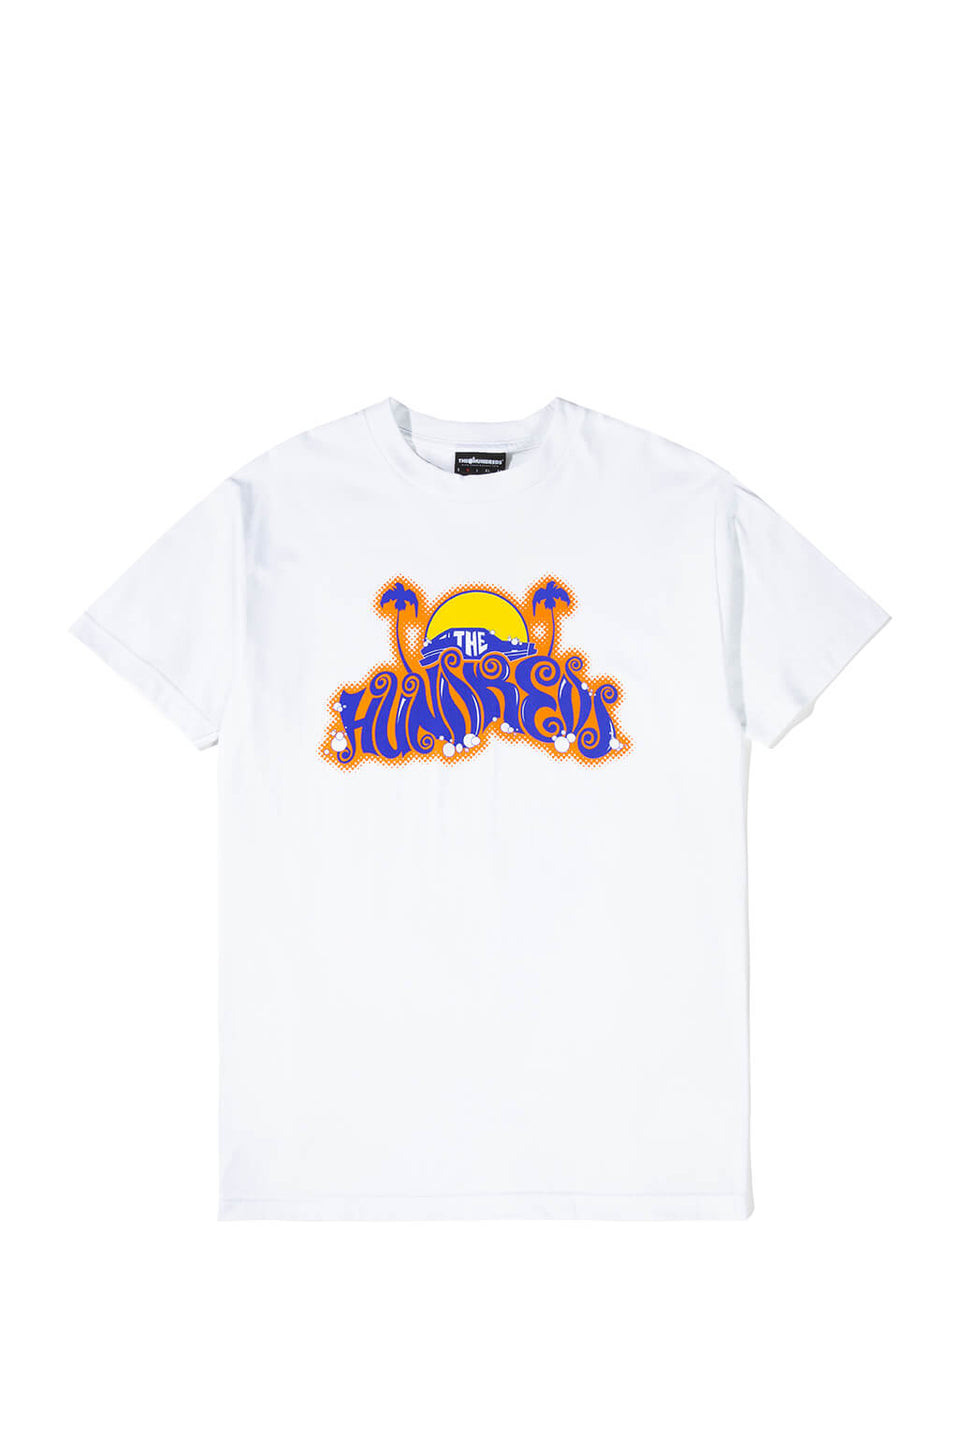 The Hundreds Rent T-Shirt White